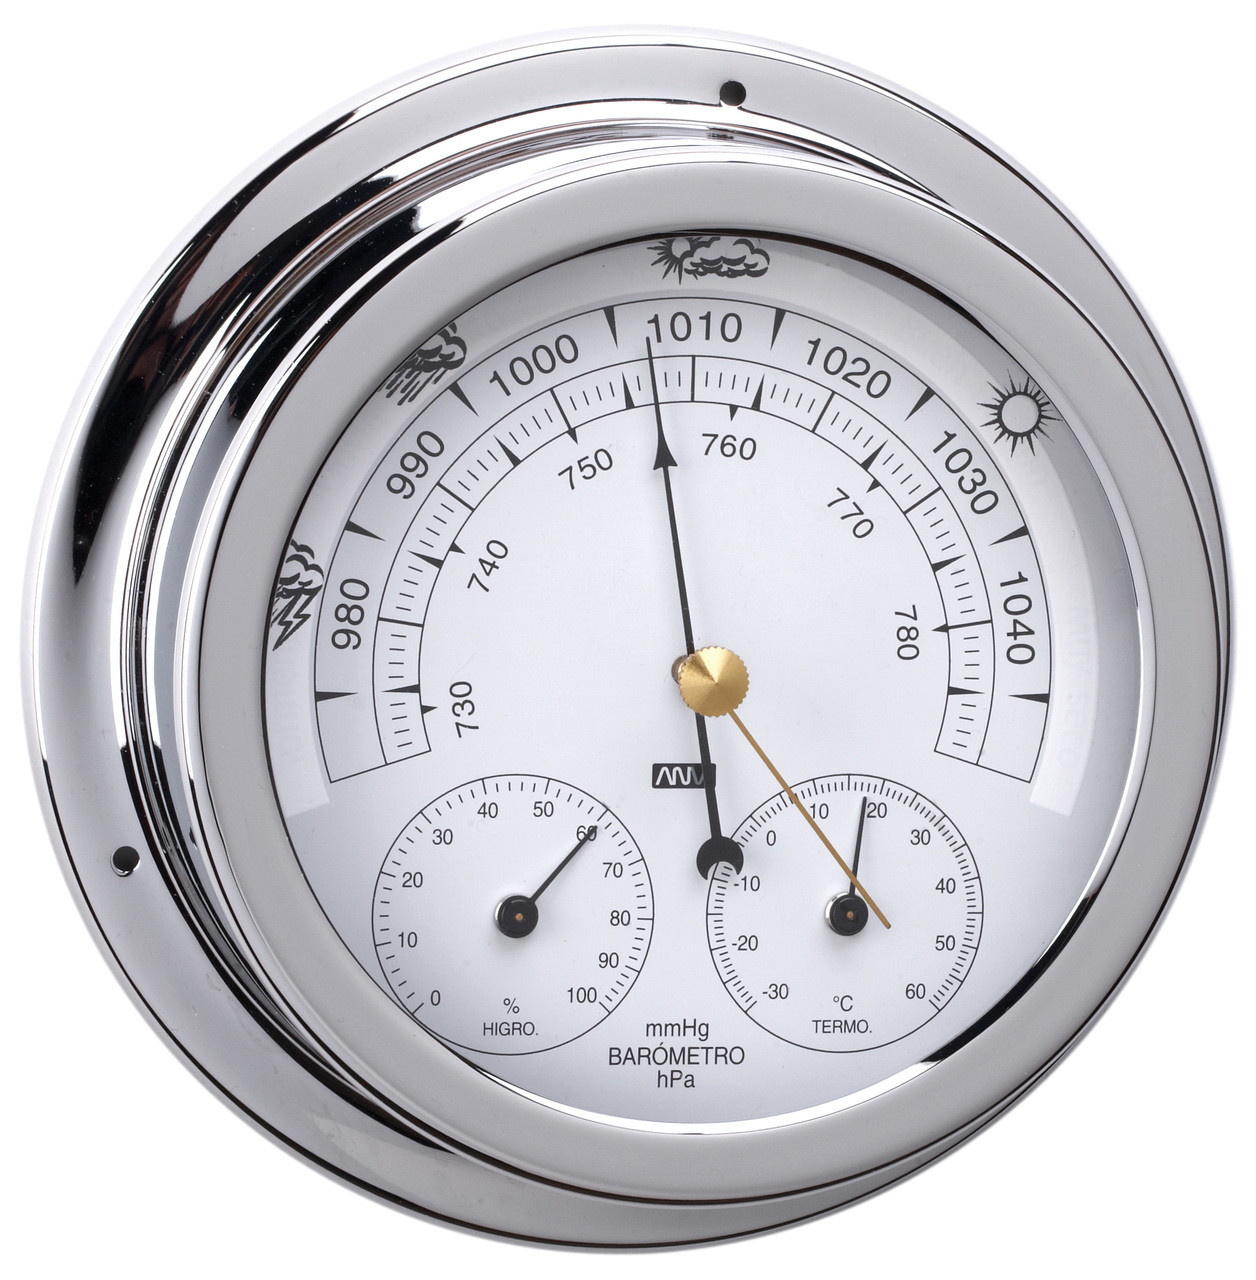 Barometer, Thermometer & Hygrometer Tripe Combo - 120mm Chrome Plated Brass